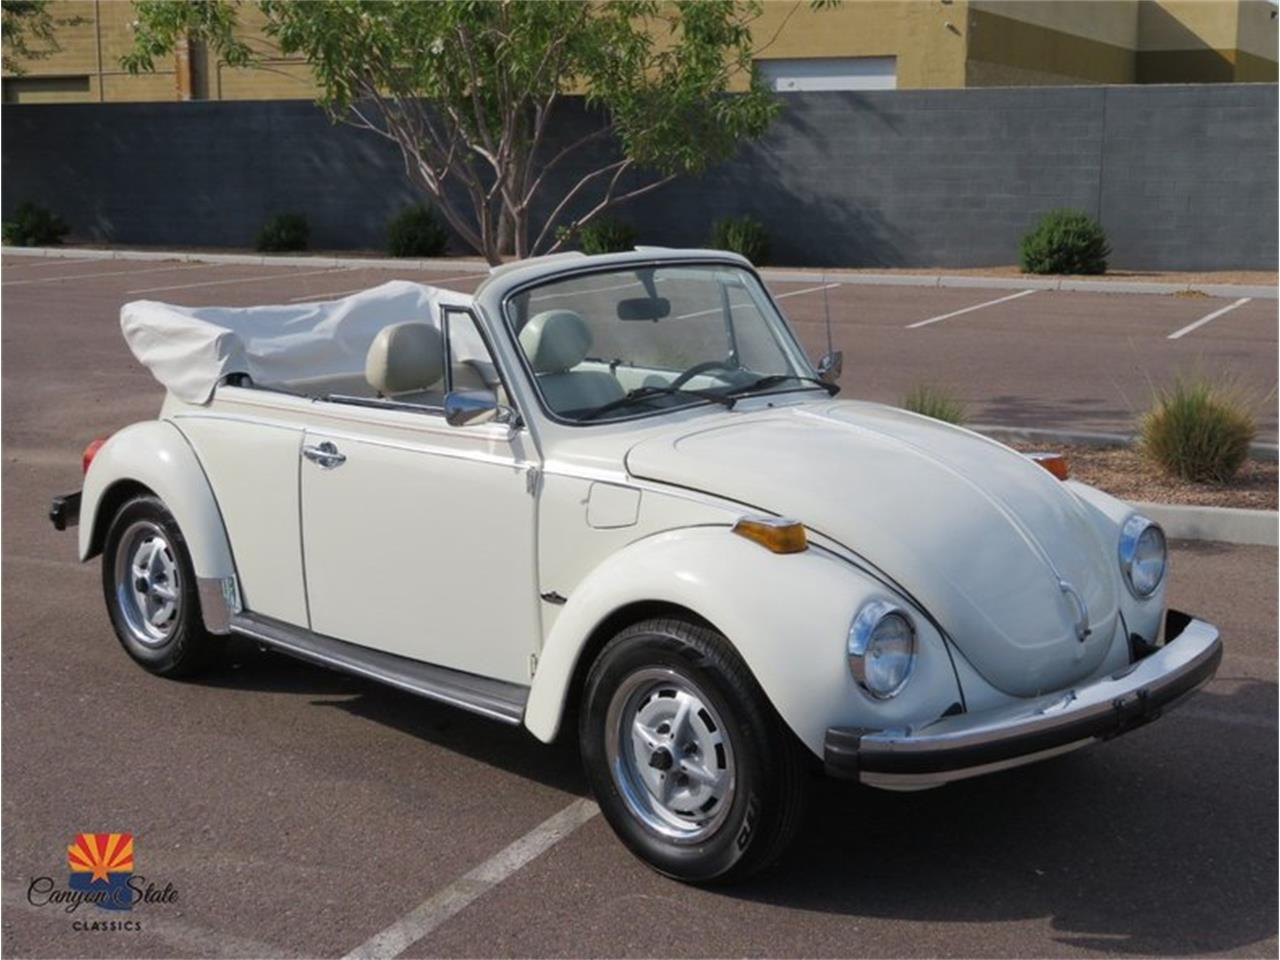 Large Picture of '76 Beetle Offered by Canyon State Classics - R1BI